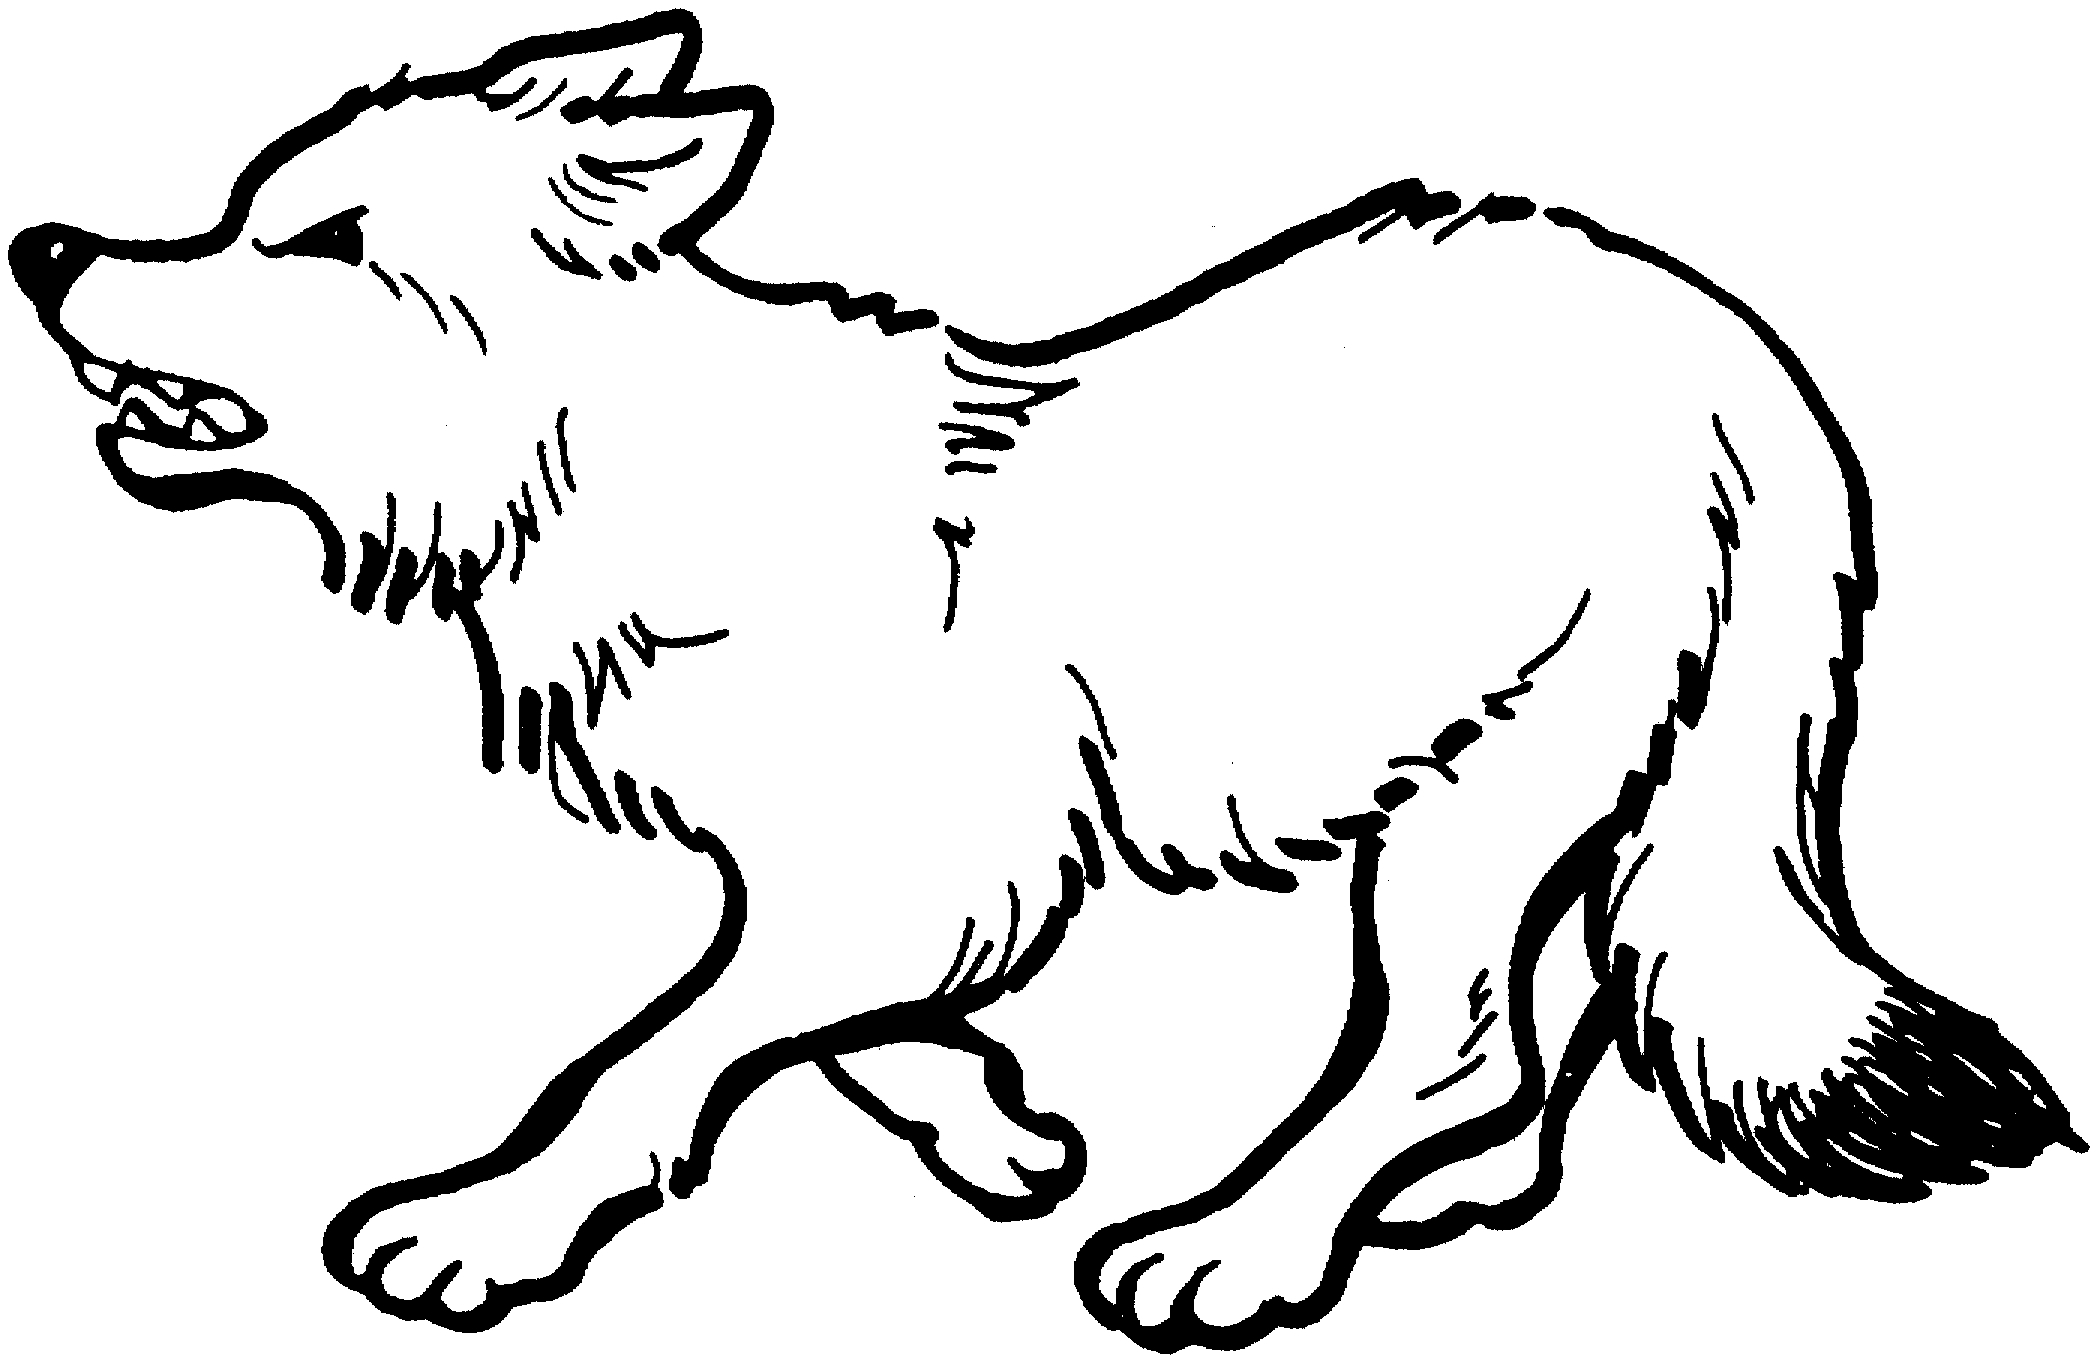 Wolves Coloring Pages Coloringsuite Free Baby Wolf 5 Download Of Wolf Coloring Pages Elegant Free Printable Wolf Coloring Pages for Download